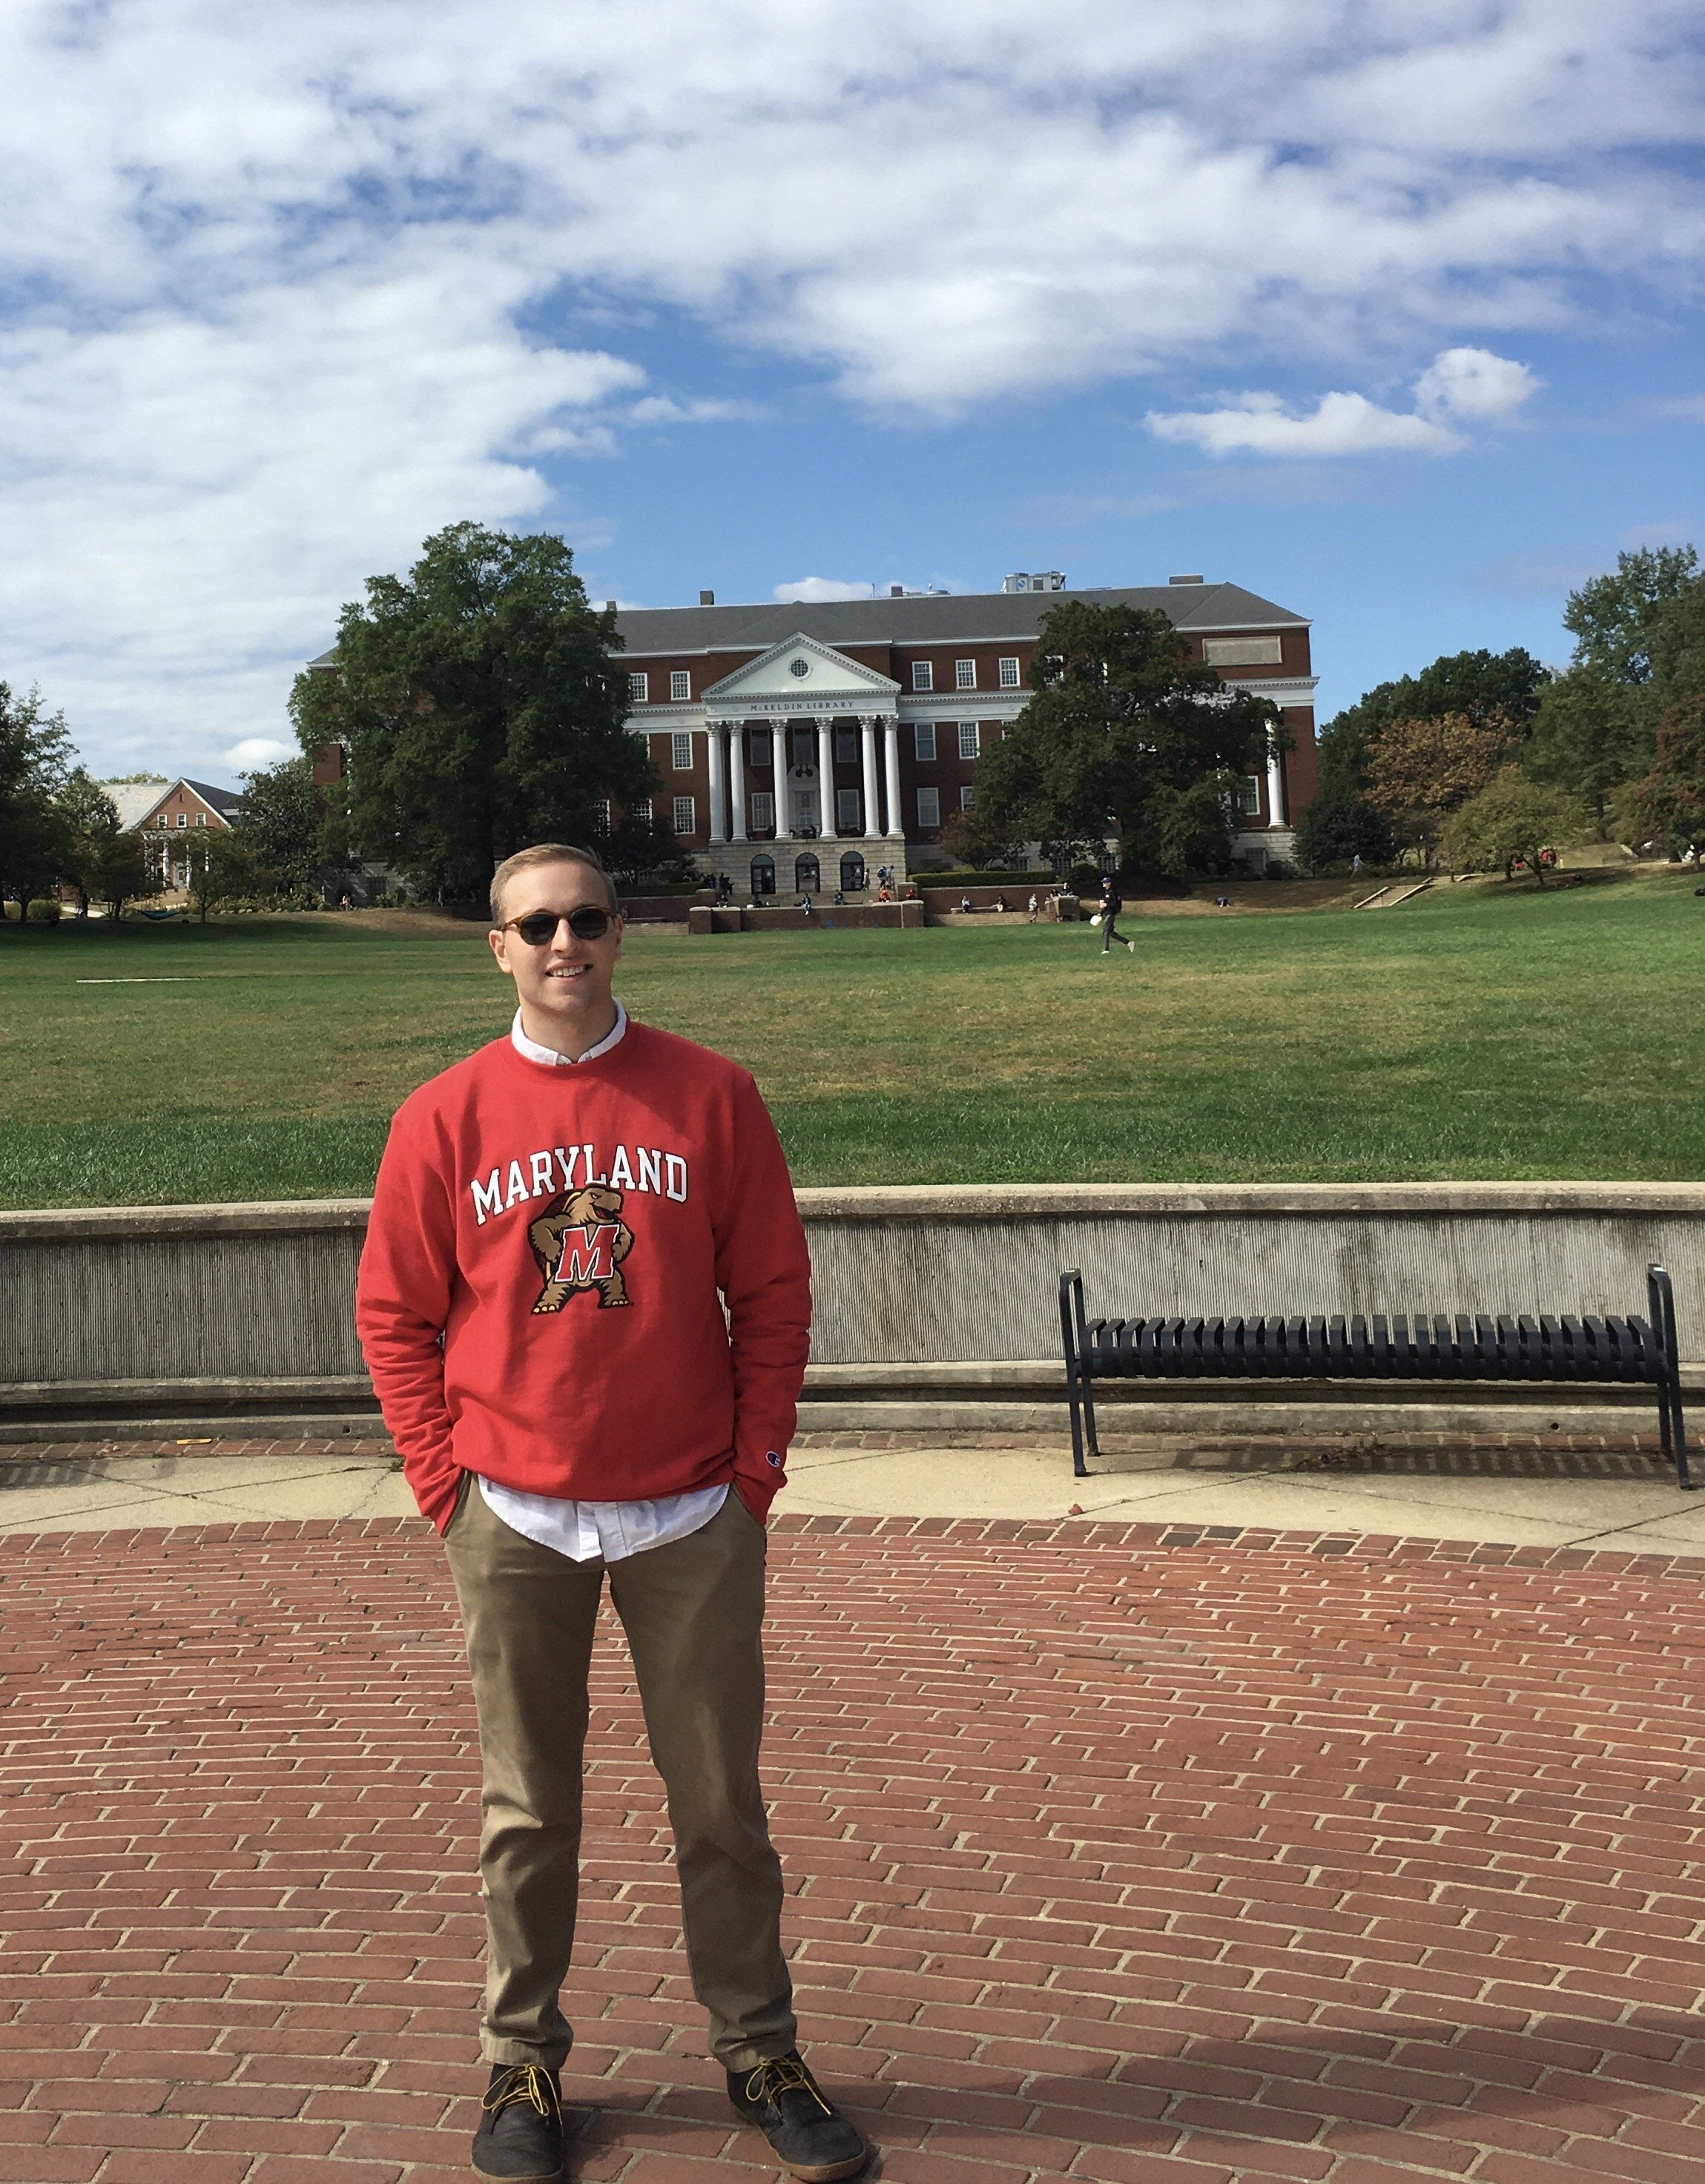 Cole Butler, B.A. - Staff Research Assistant